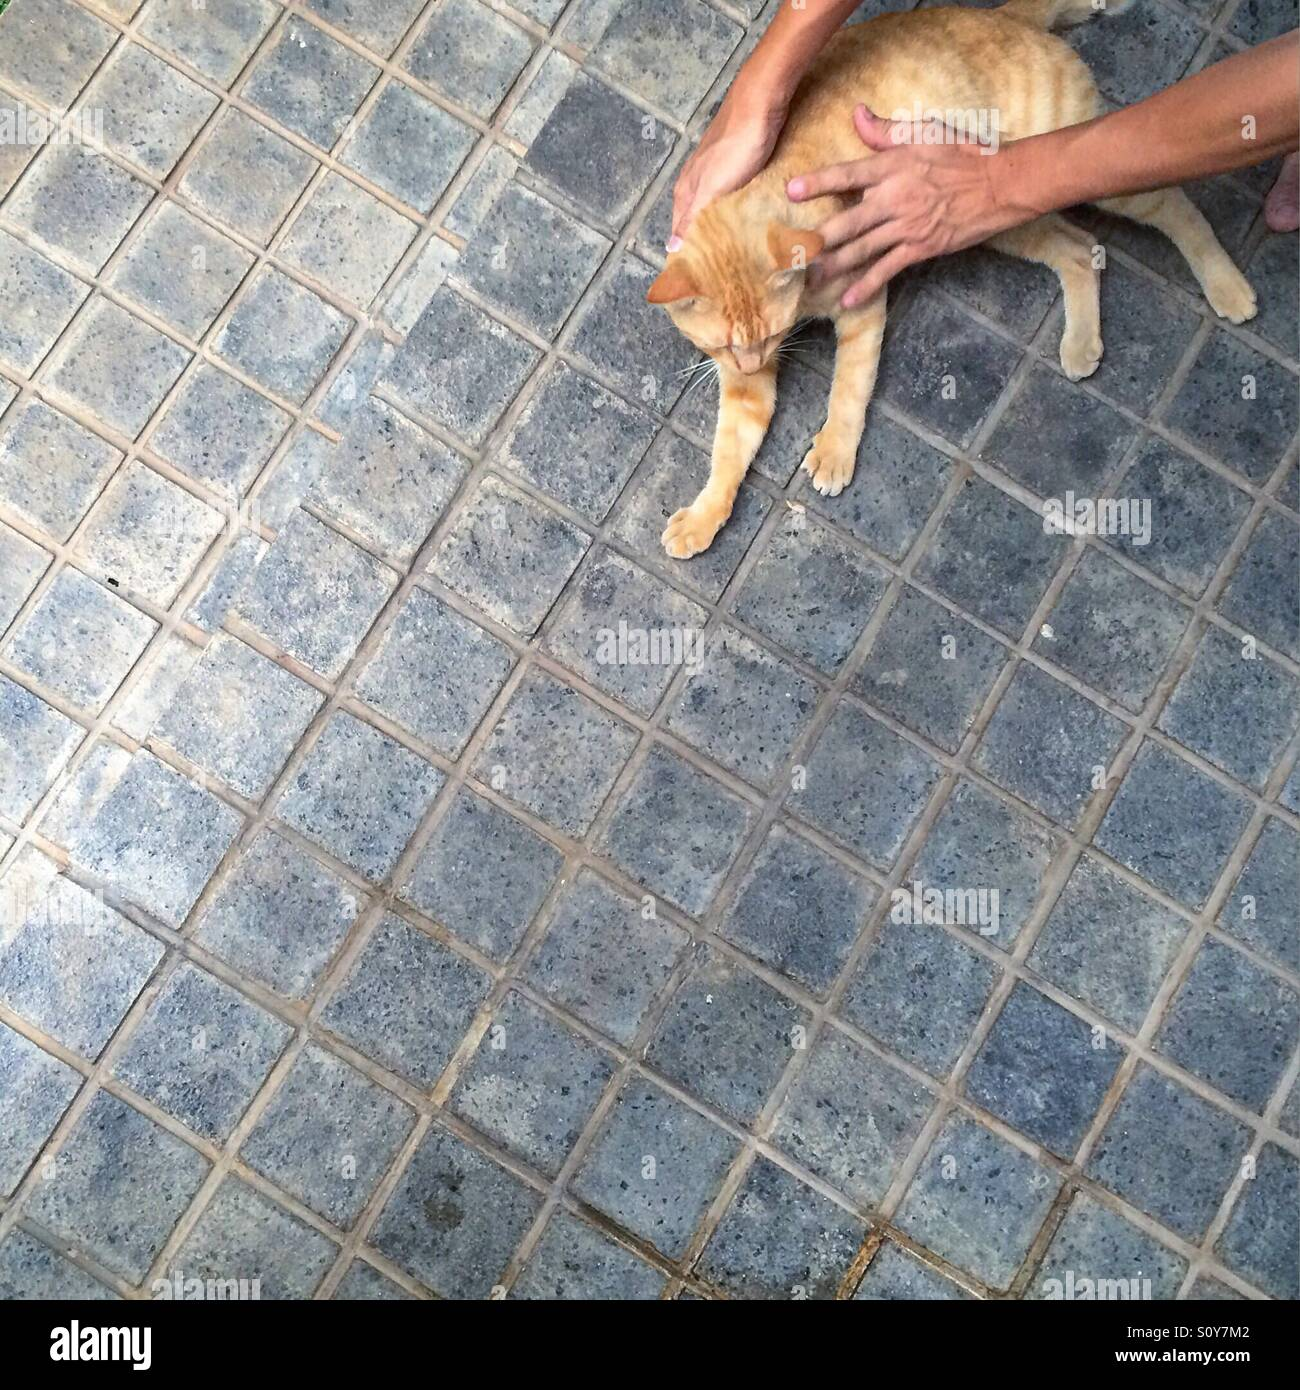 Person petting an orange cat. - Stock Image